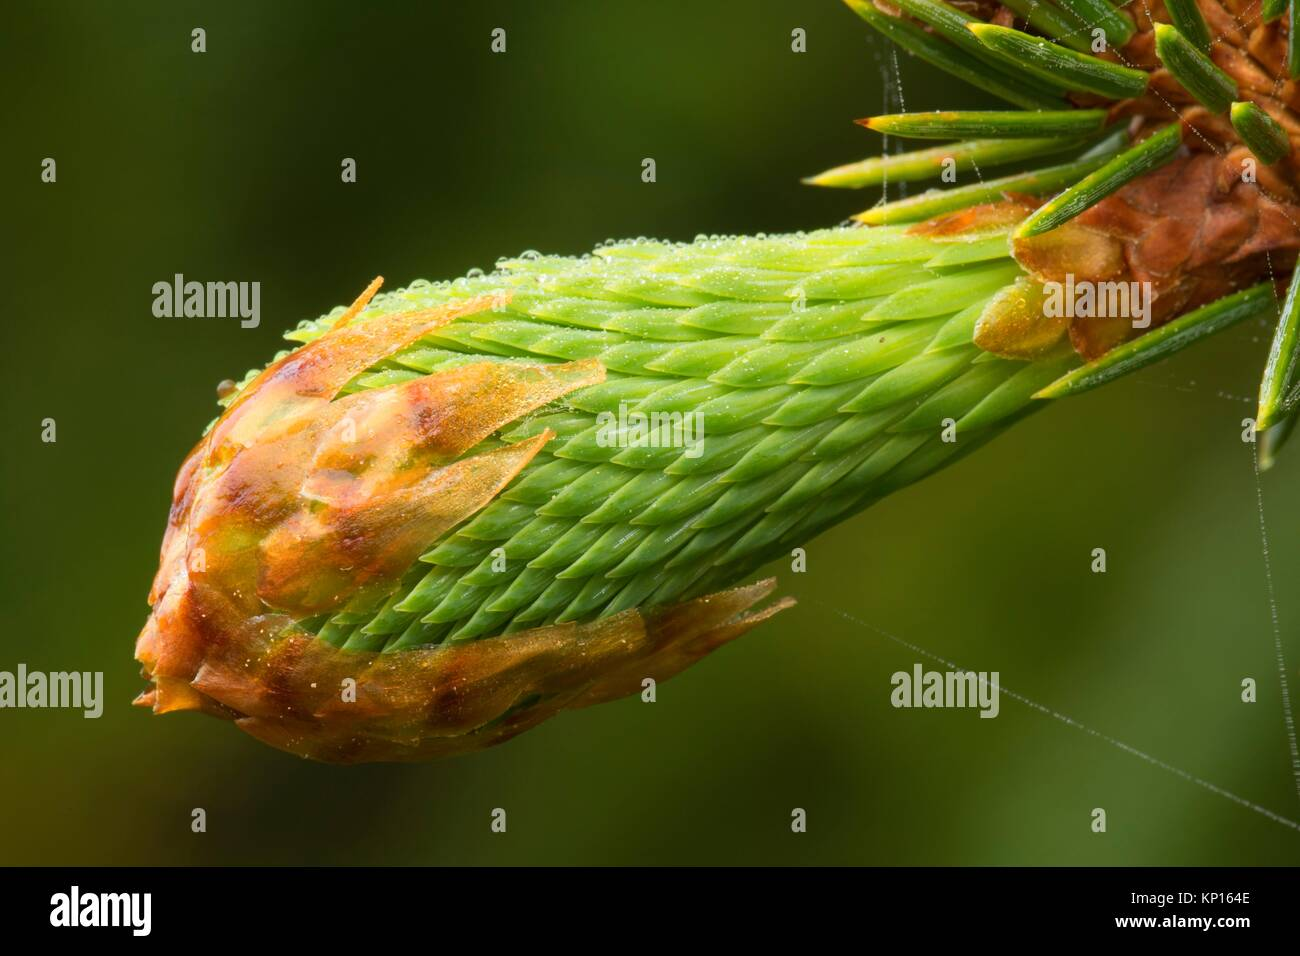 Sitka spruce (Picea sitchensis) needles, Otter Point State Park, Oregon. - Stock Image